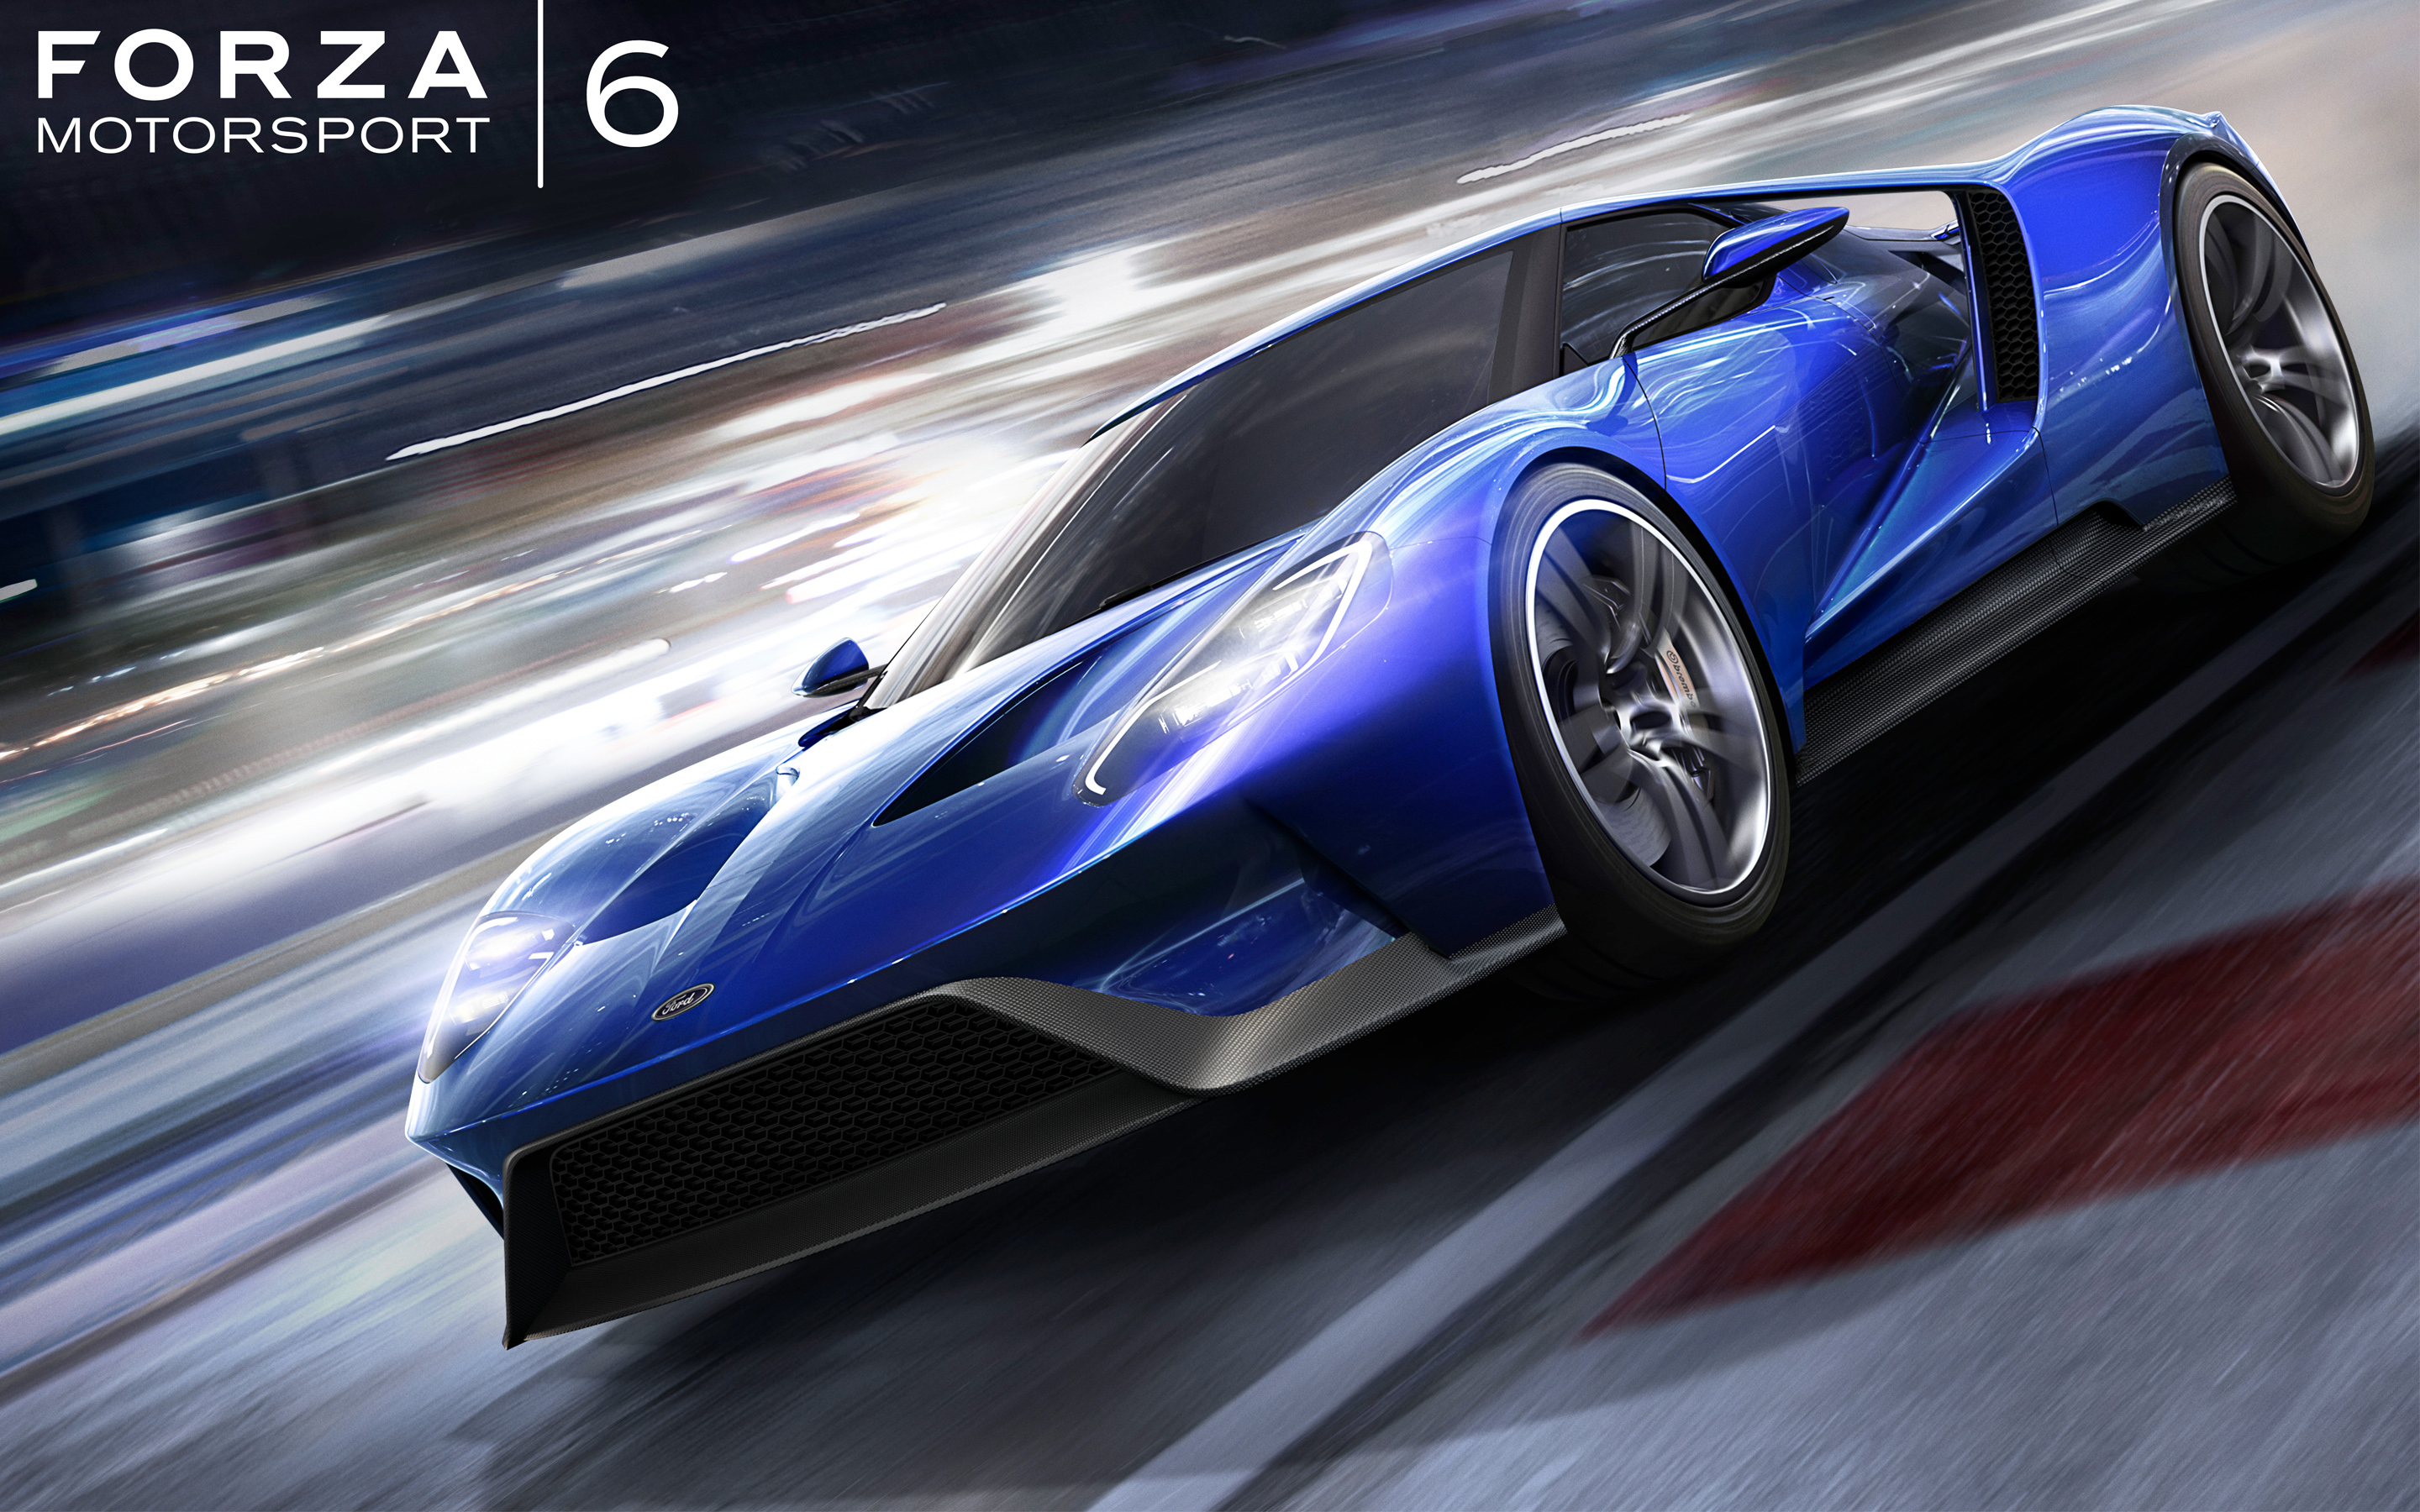 Ford GT Forza Motorsport 6 Wallpapers HD Wallpapers 2880x1800